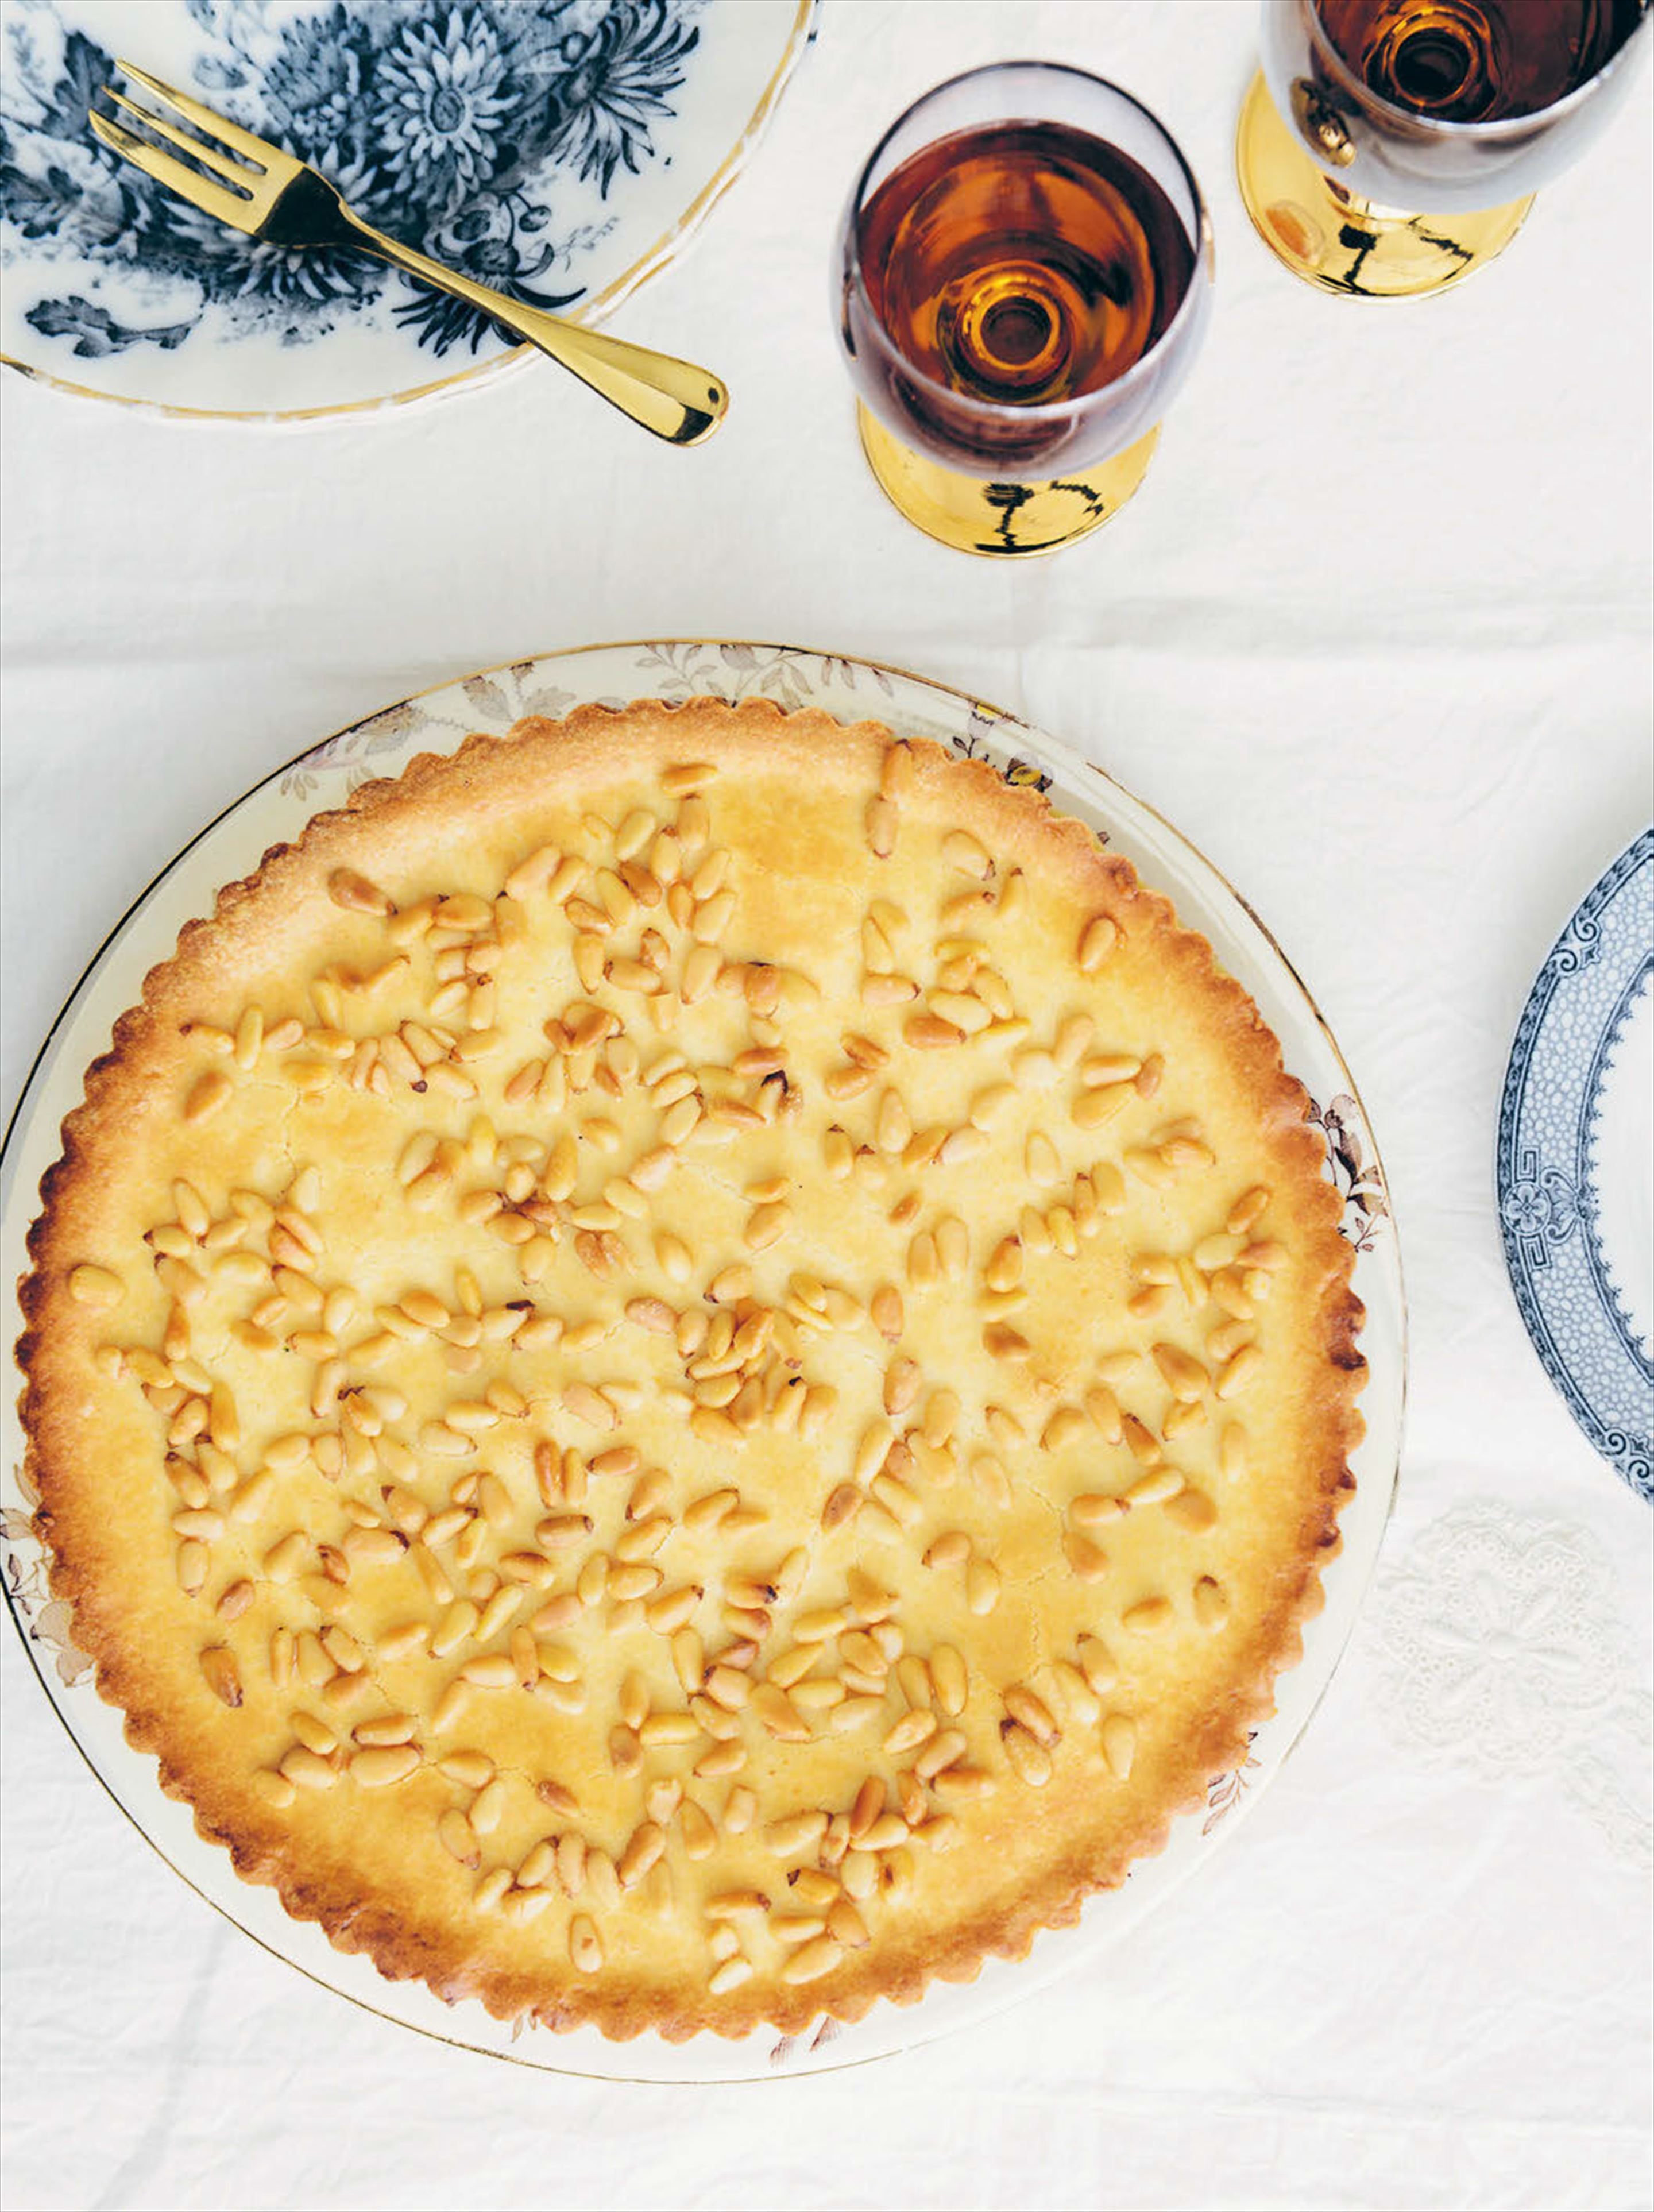 Grandmother's tart